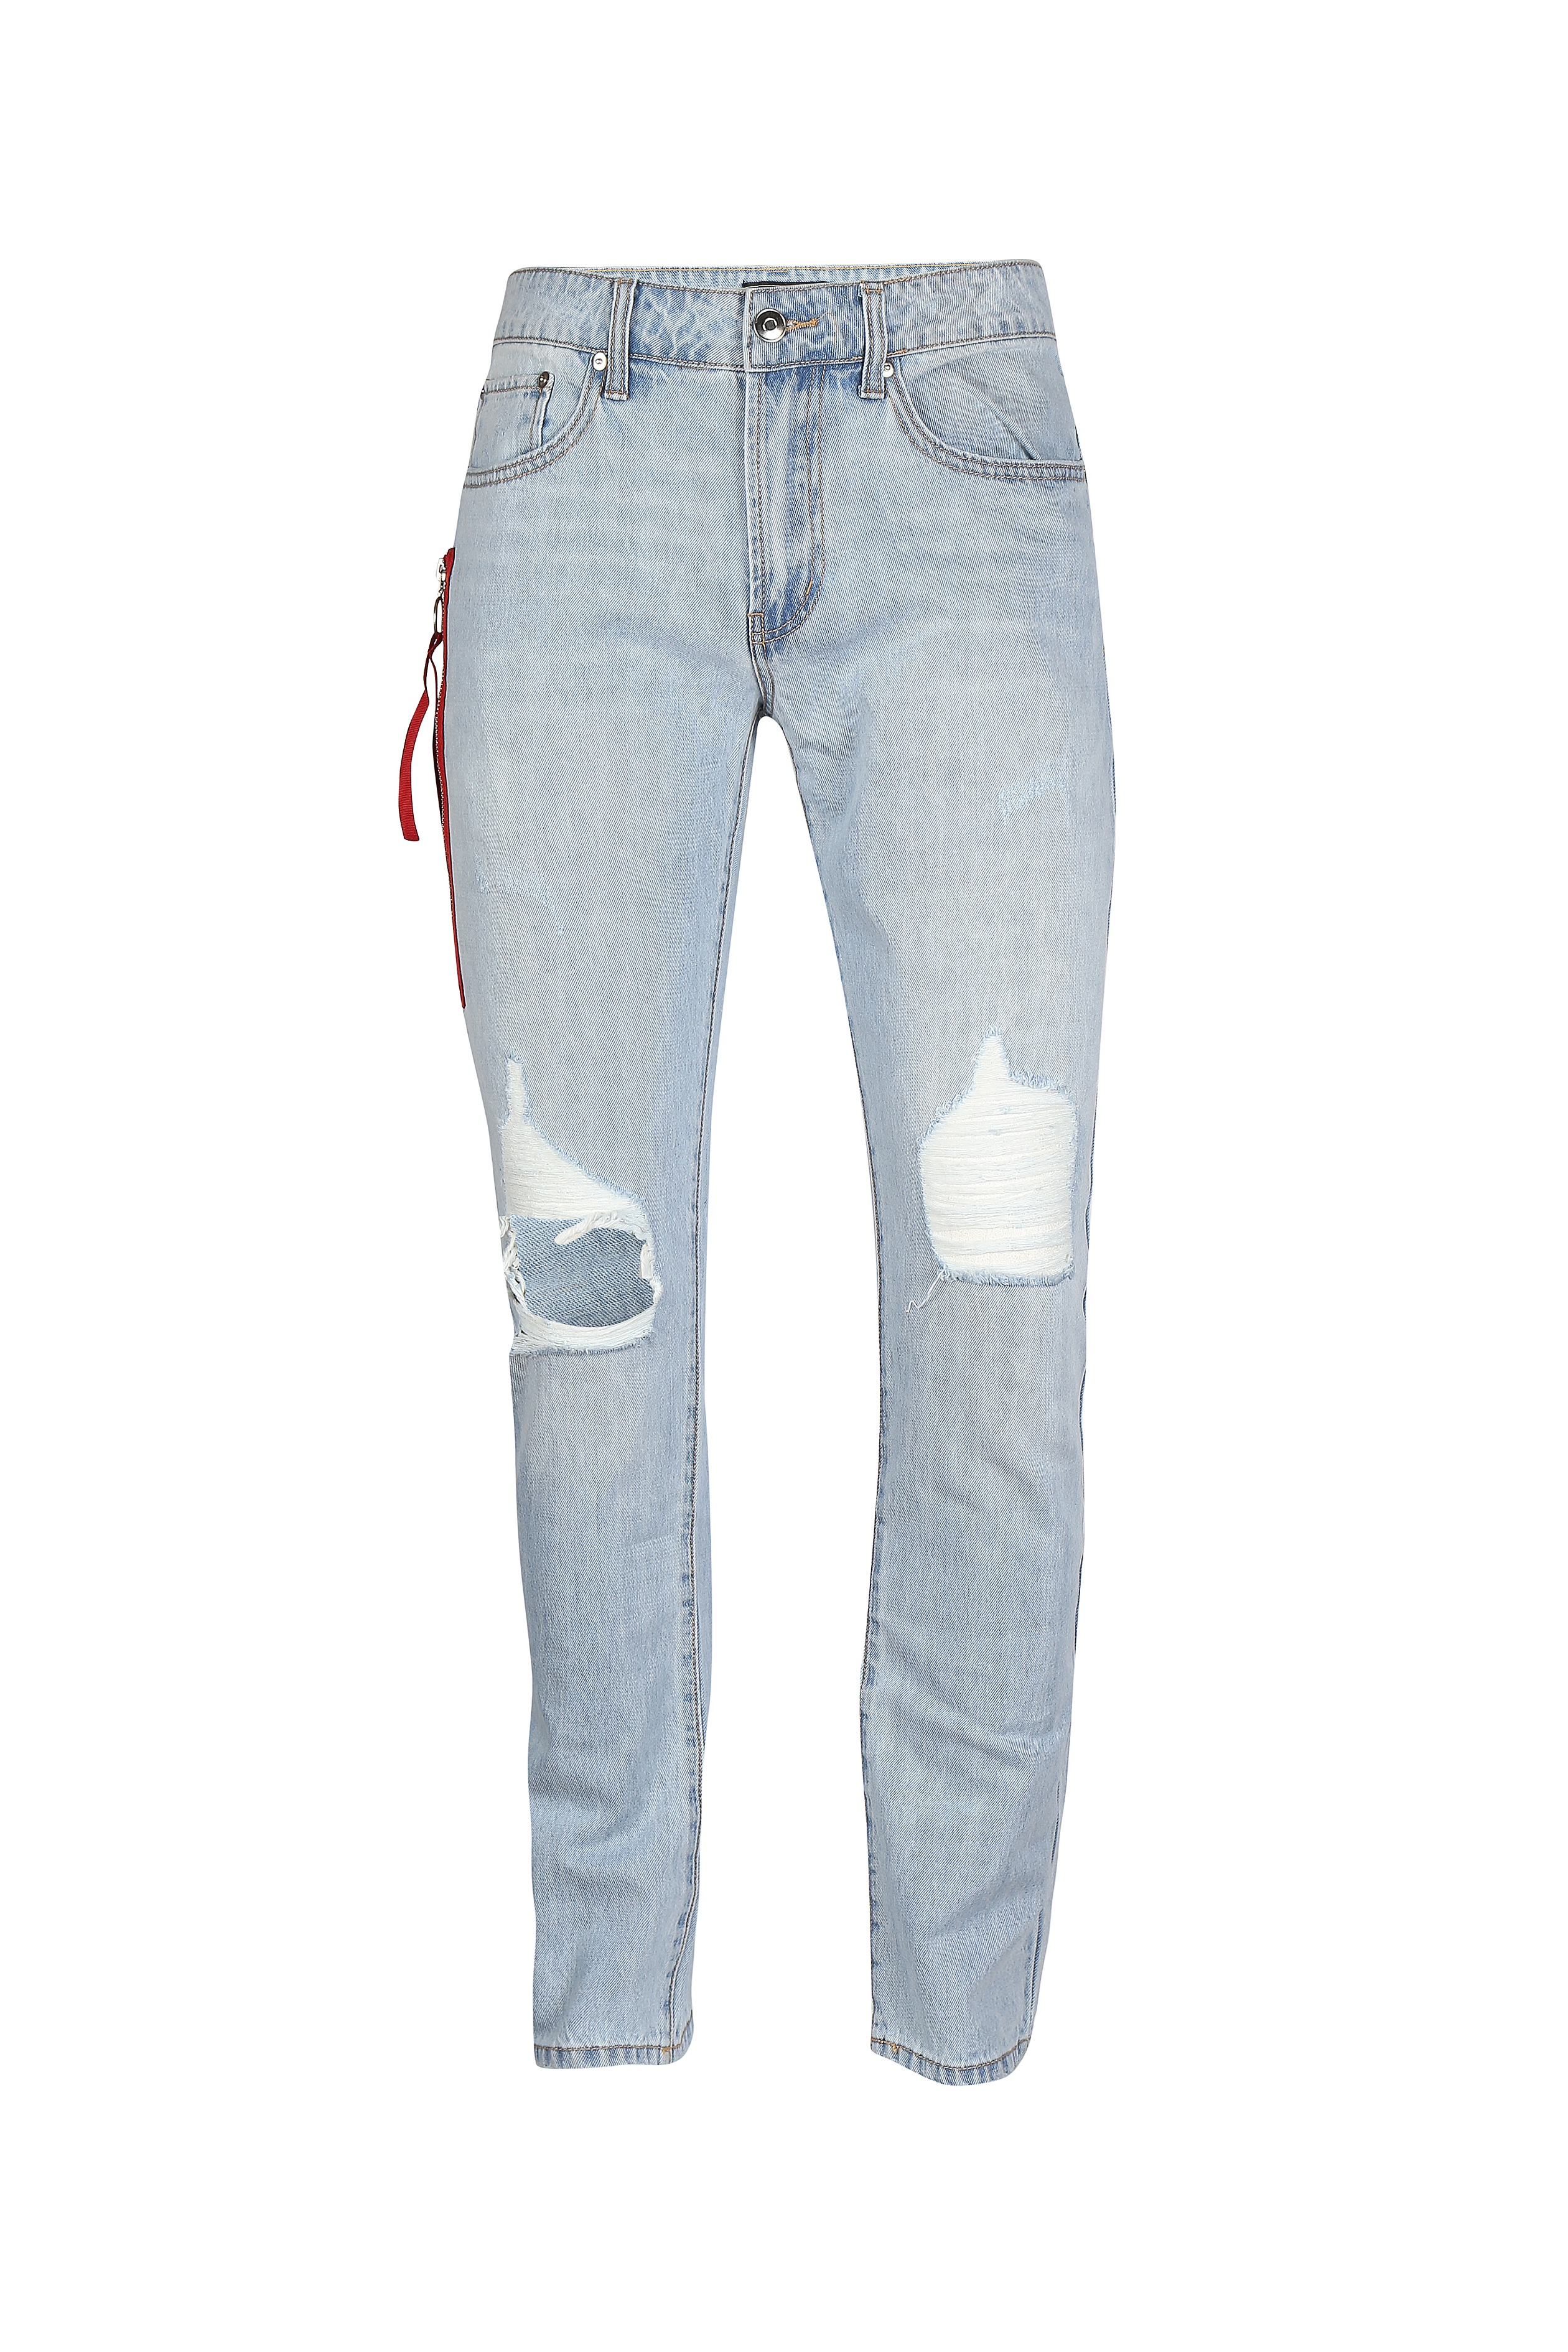 Light blue ripped jeans for men - Rs. 2499 (1)